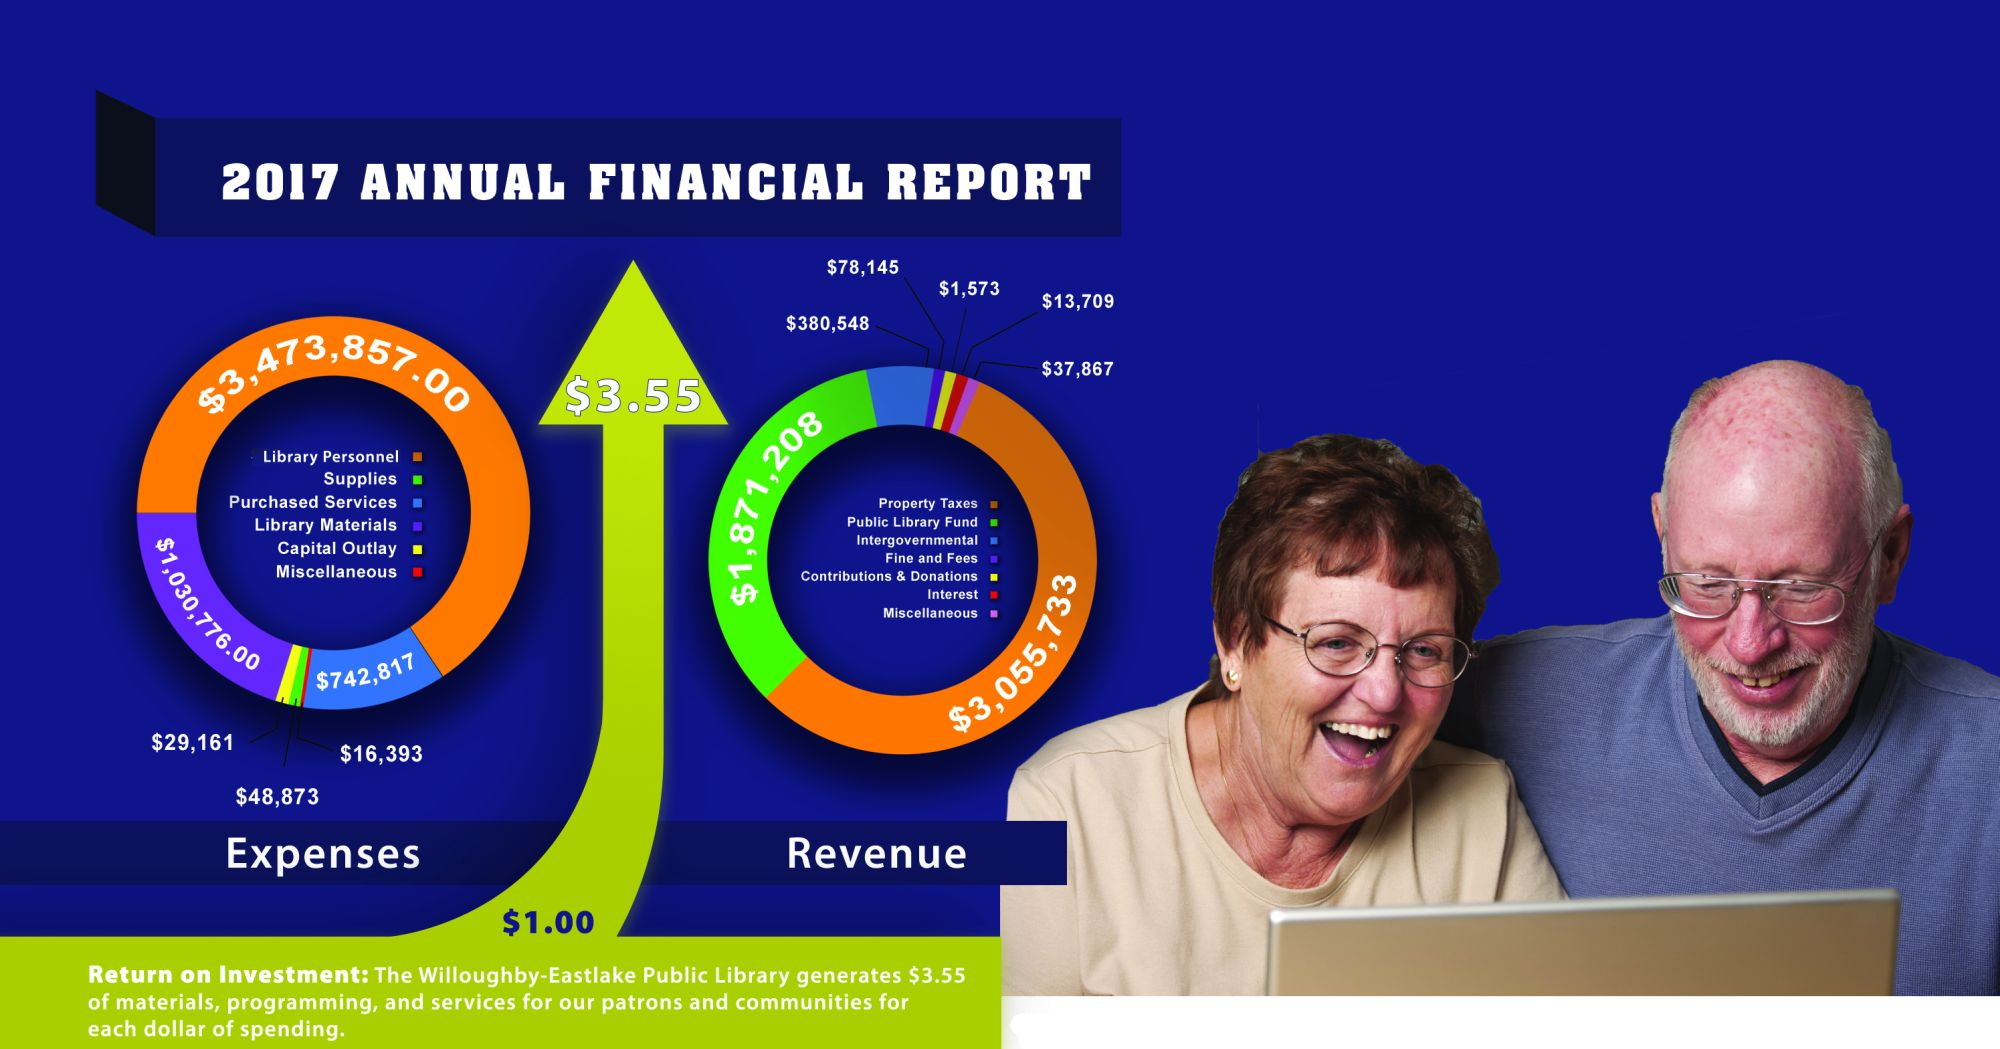 2017 Annual Financial Report